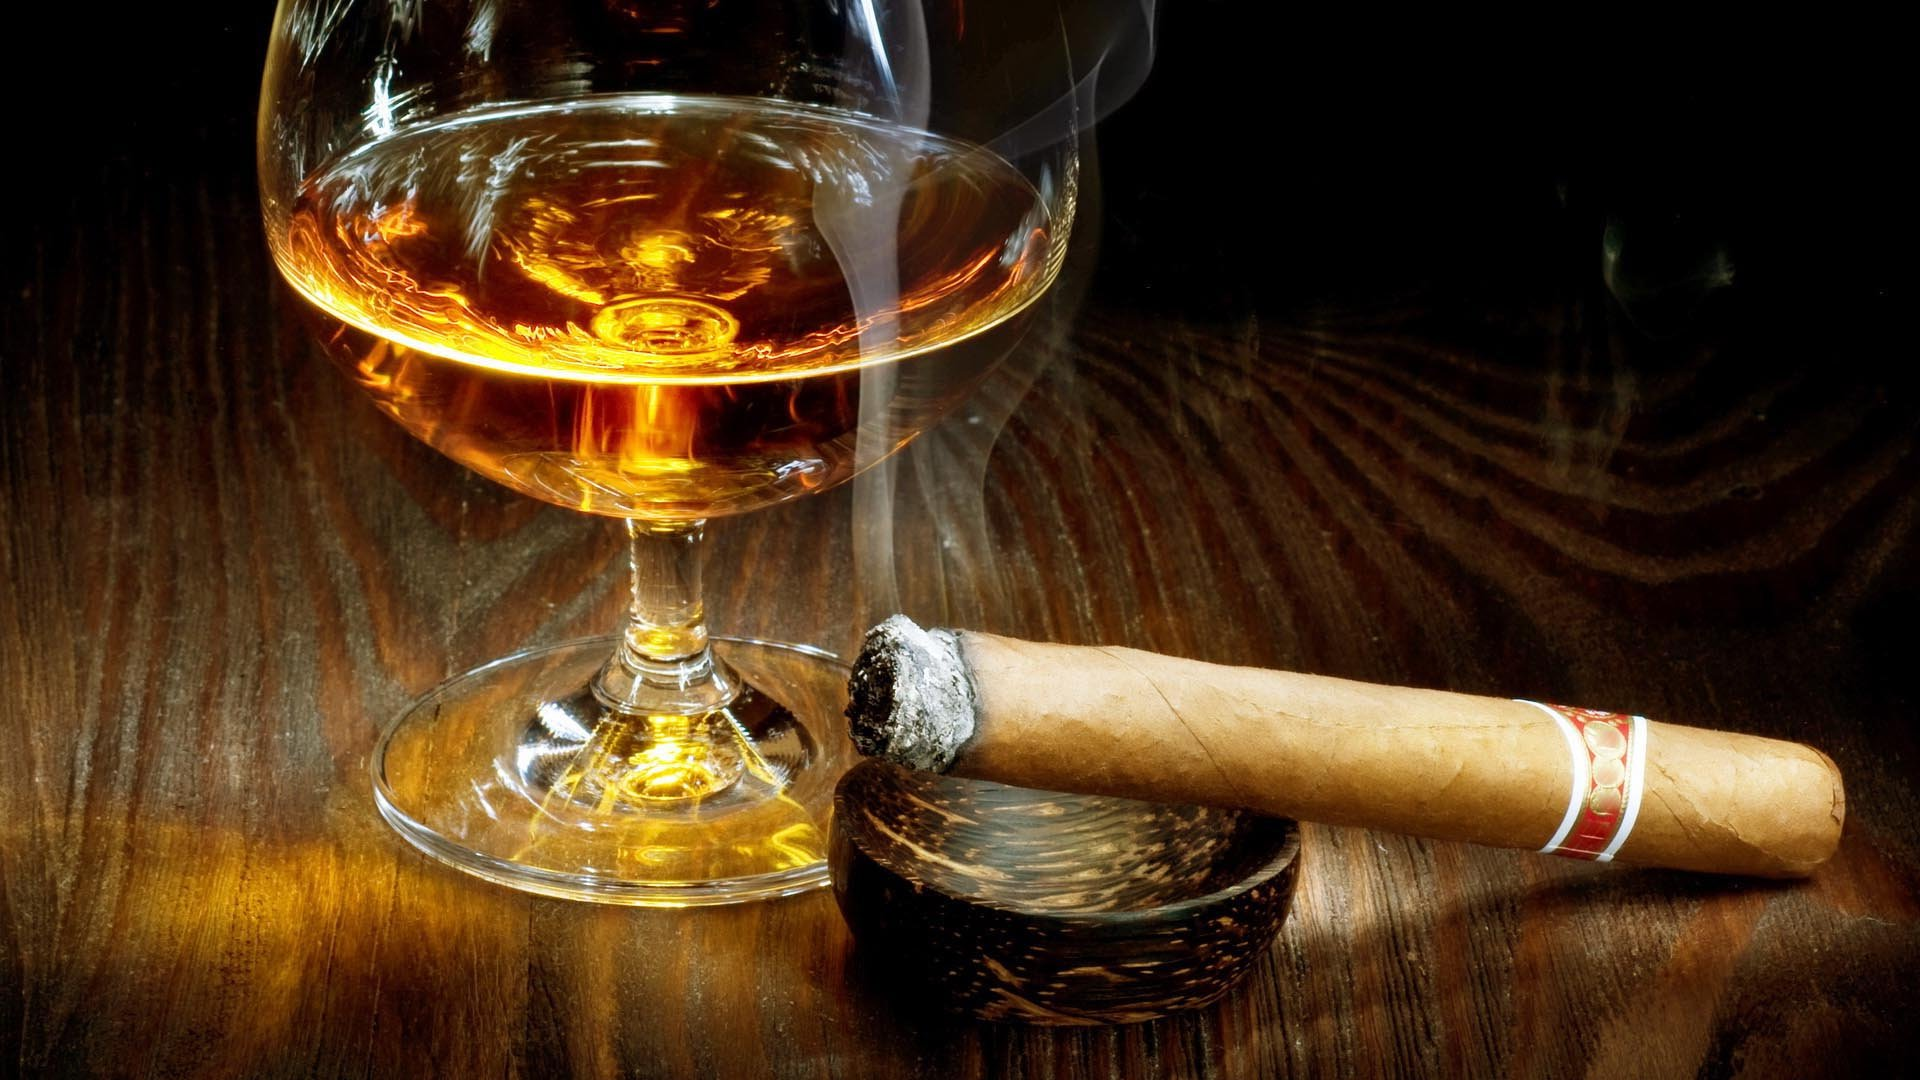 tobacco bokeh smoke smoking cigar drink alcohol drinks glass wallpaper 1920x1080